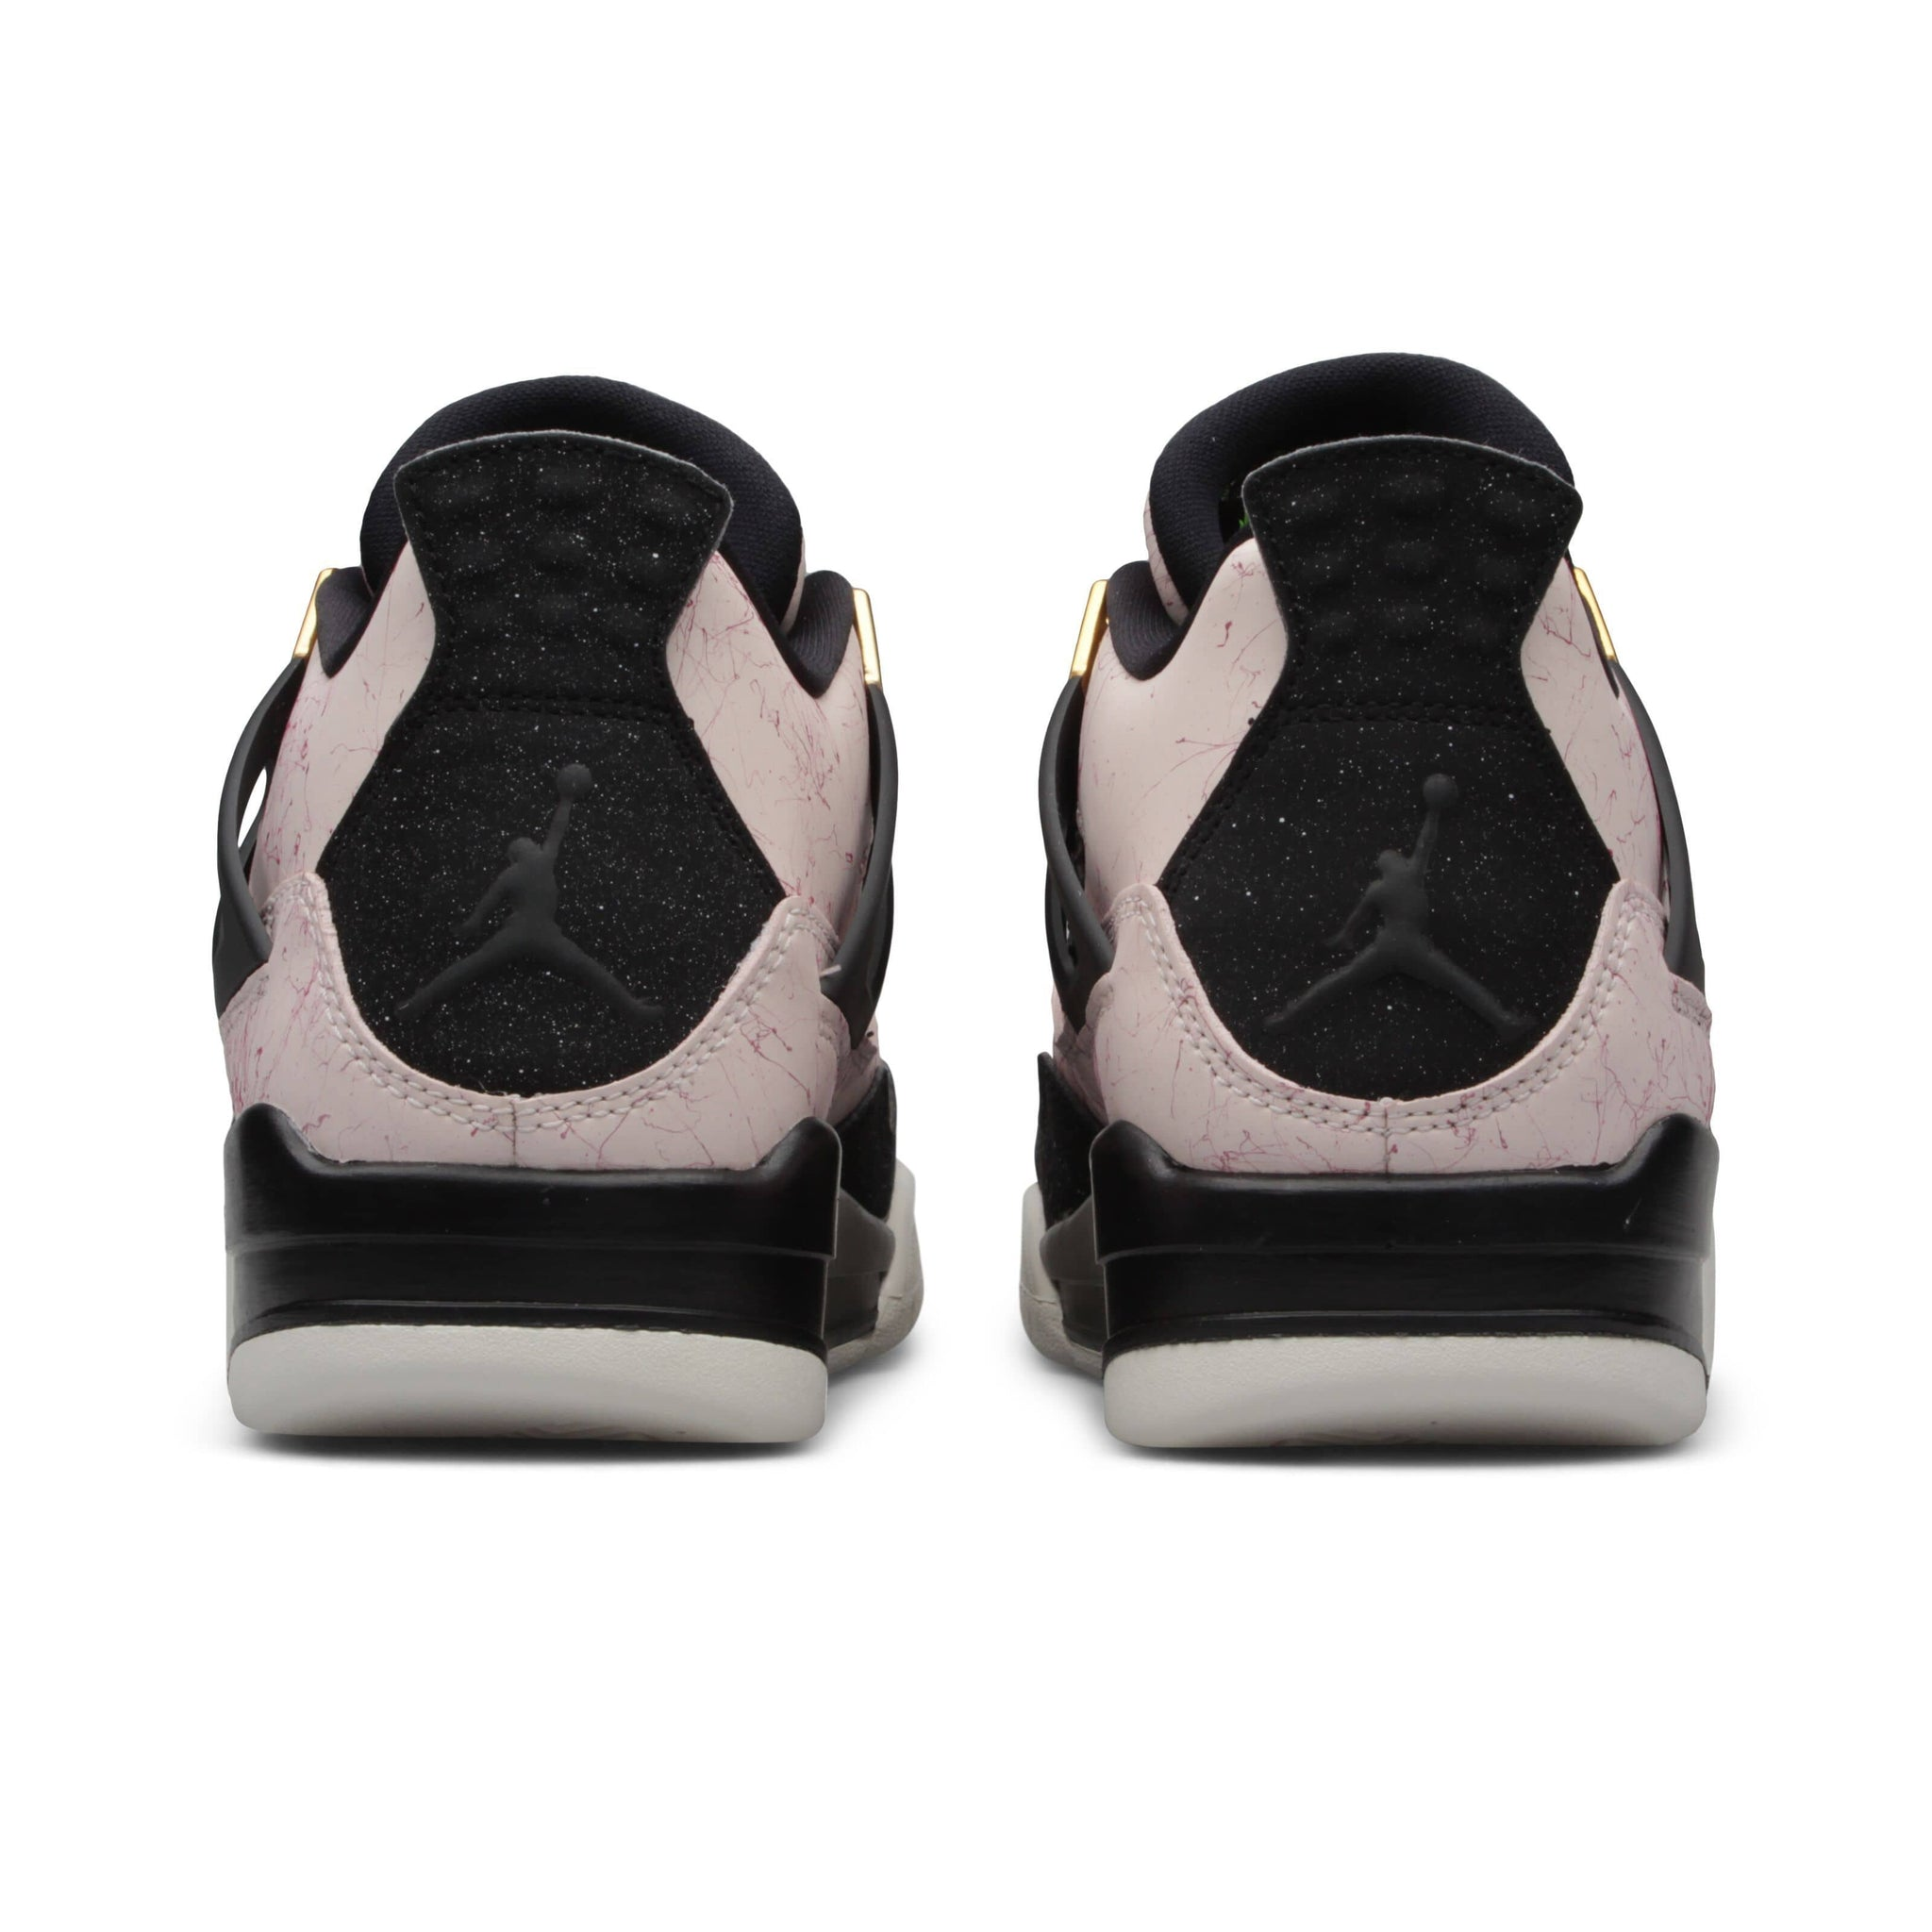 8e7e05d7edbe WOMEN S AIR JORDAN 4 RETRO (SILT RED BLACK-PHANTOM-VOLT)  AQ9129-601 ...